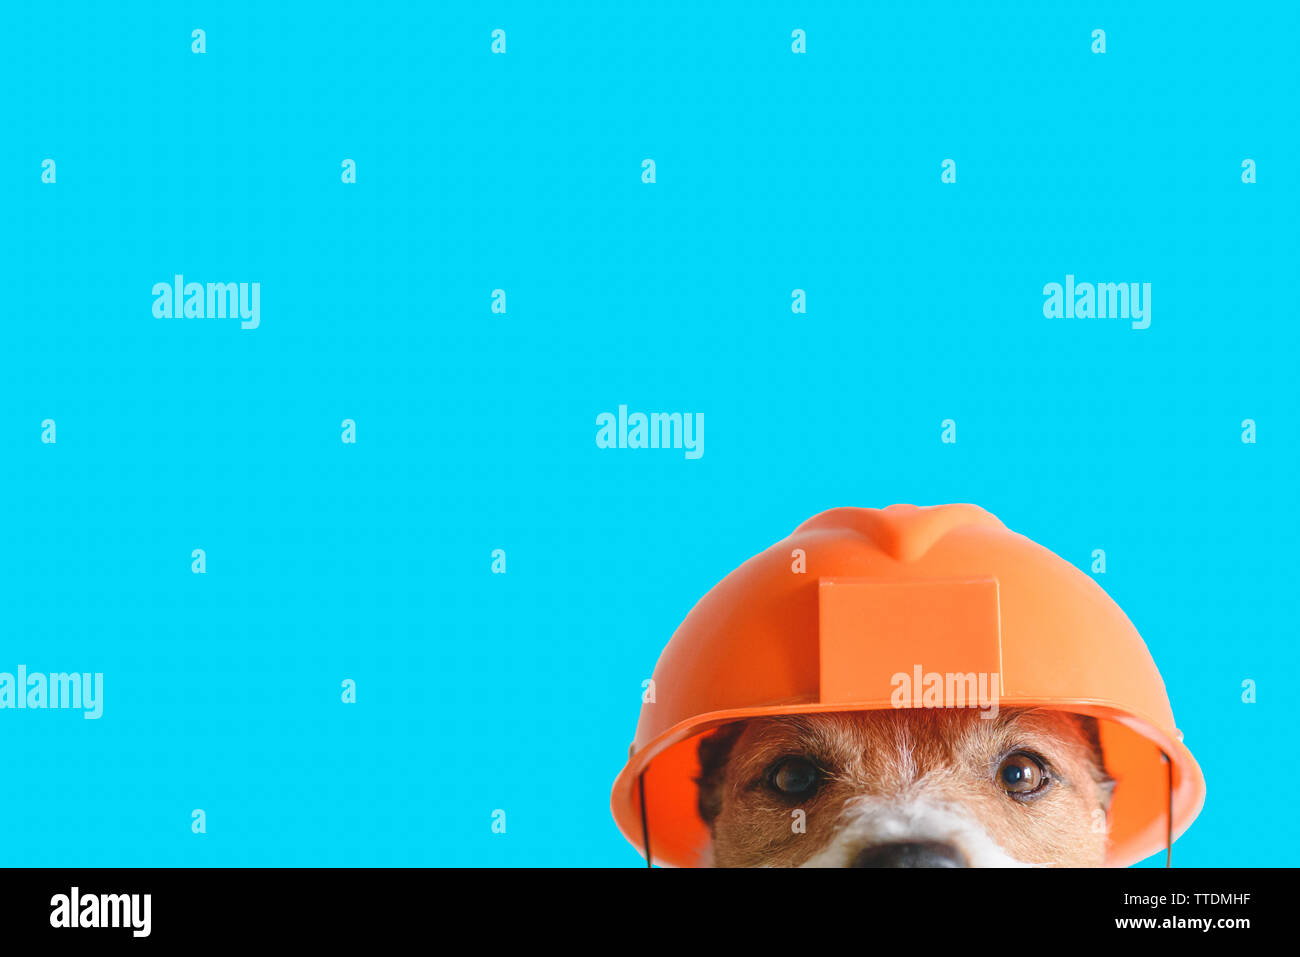 Safety, construction, DIY concept - cute dog in hard hat on color background - Stock Image